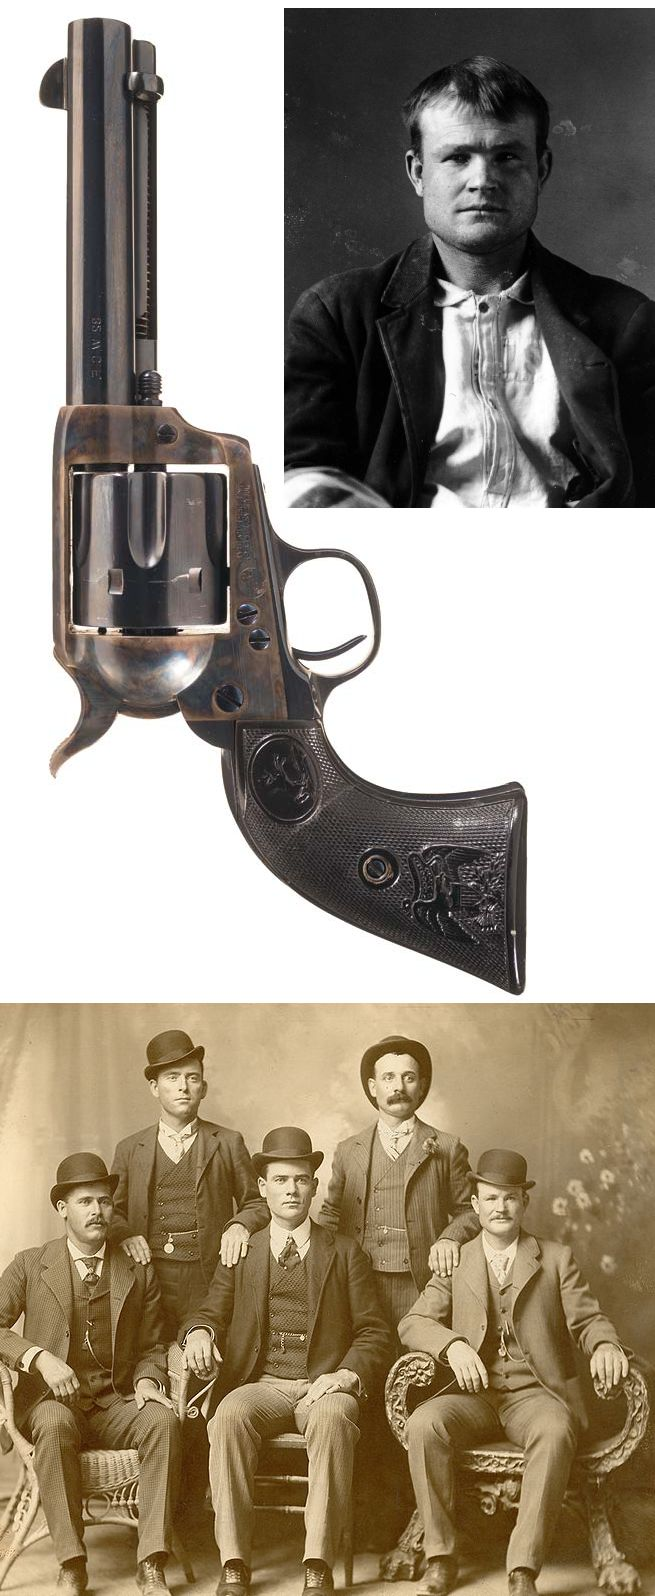 "Antique Colt Single Action Army Revolver with Notarized Letter Attributing the Revolver to Famous Western Outlaw Robert Leroy Parker, Best Known as ""Butch Cassidy"" ,ca. 1896. Providence see   http://www.rockislandauction.com/viewitem/aid/59/lid/1213"